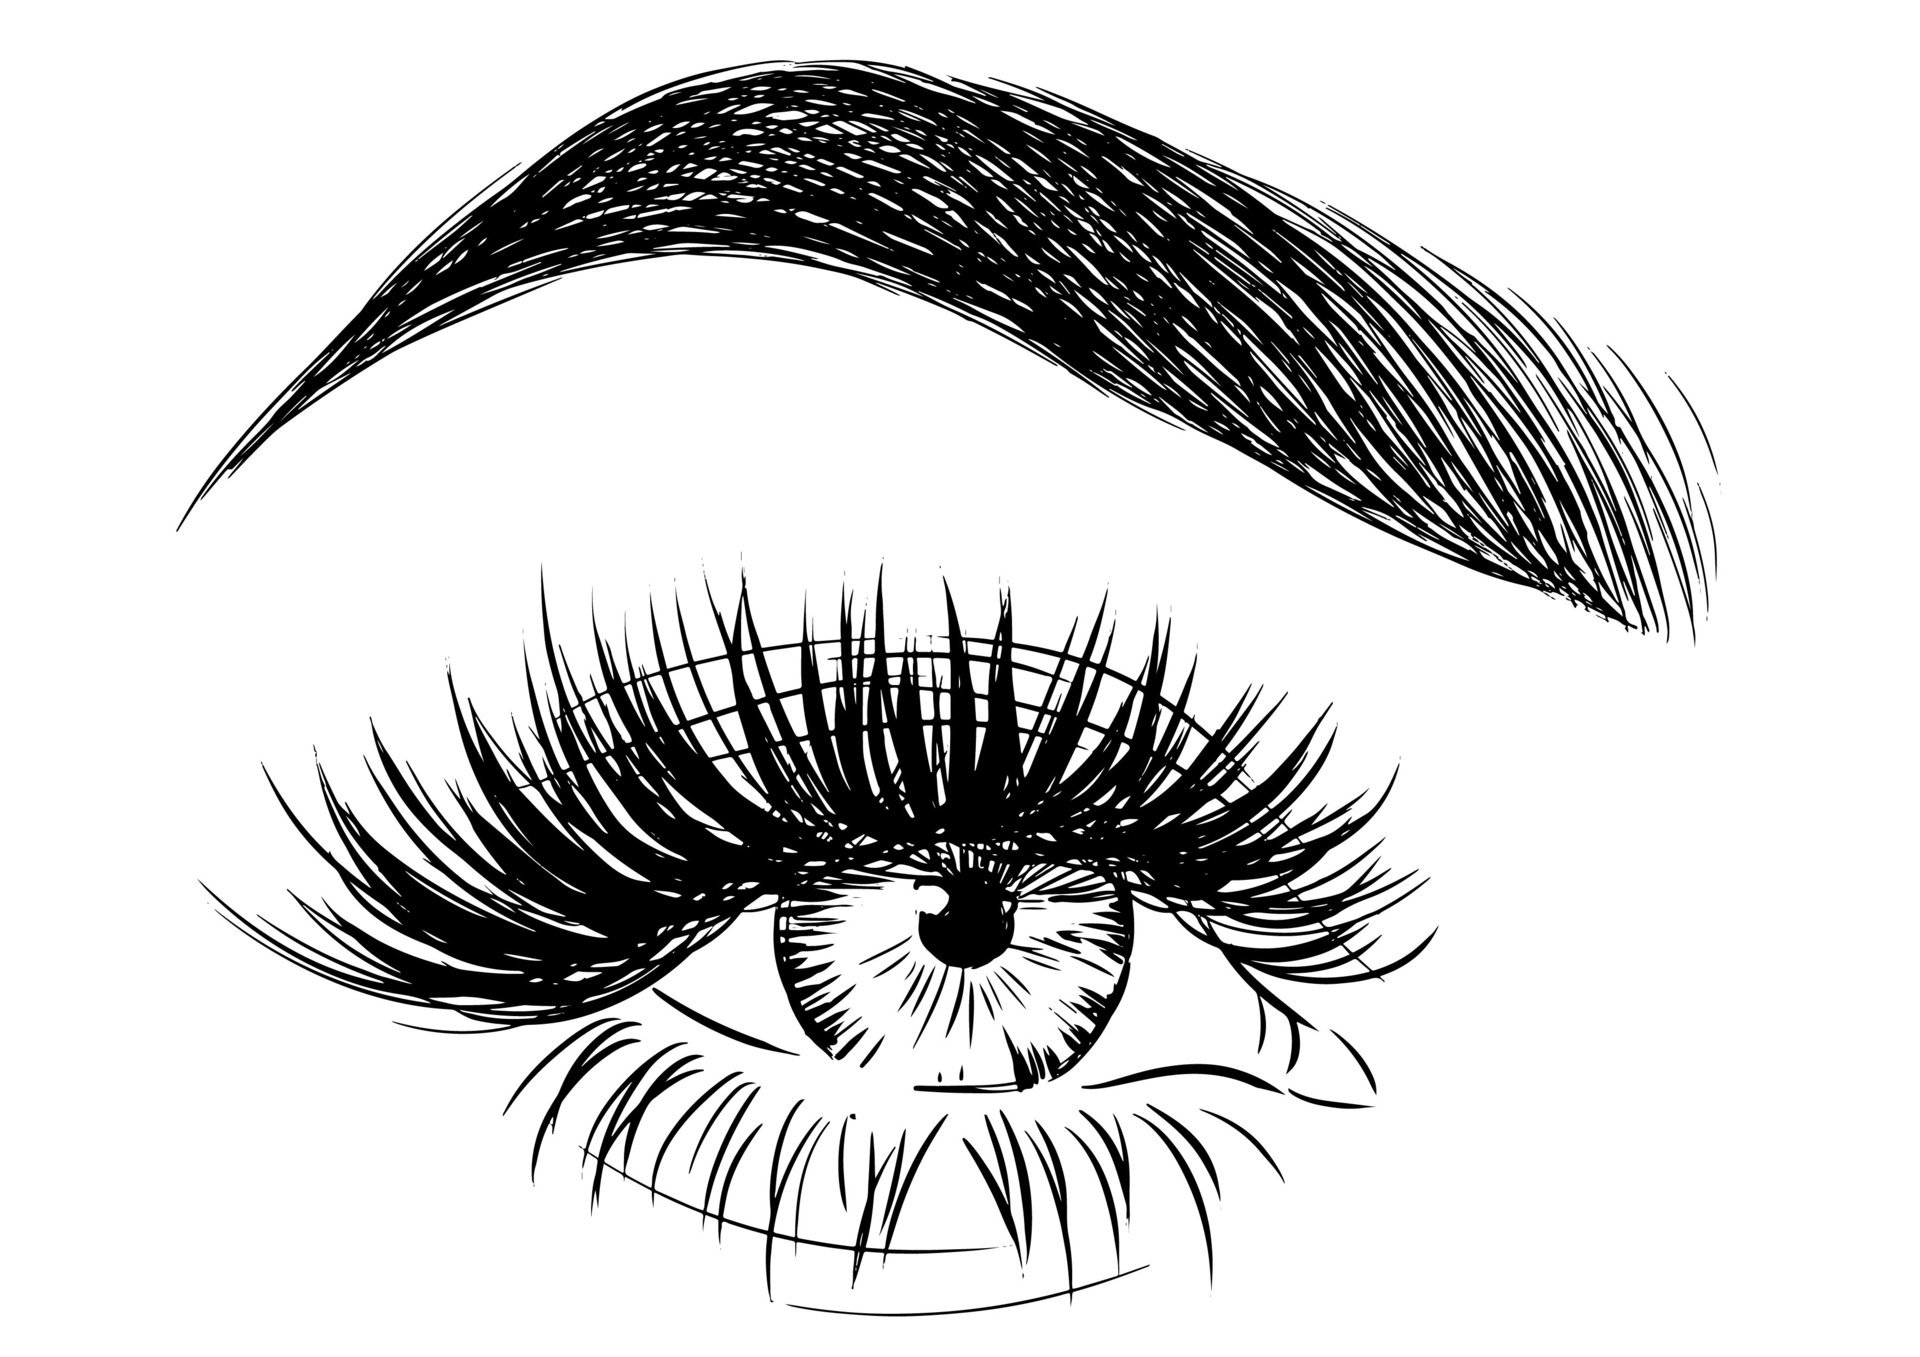 Creative Braided Eyebrow Trend 201799t15112611z moreover Superman Vs Mr M ptlk 228642937 together with How To Draw Pinocchio together with Face Chart Makeup Artist Blank Vector 481977799 additionally Good Bacteria Wel e. on cartoon eyebrows